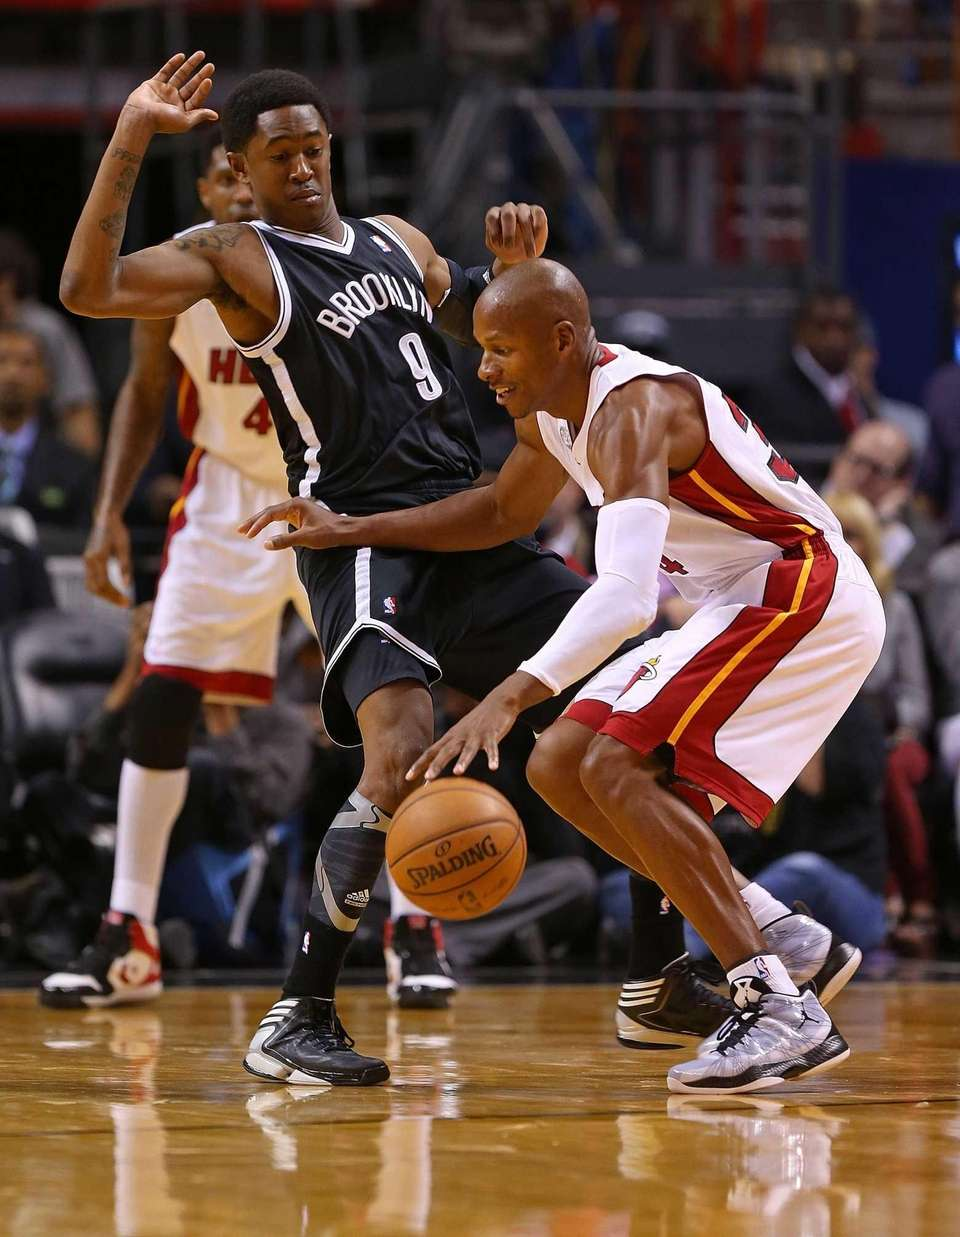 Miami Heat guard Ray Allen drives against MarShon